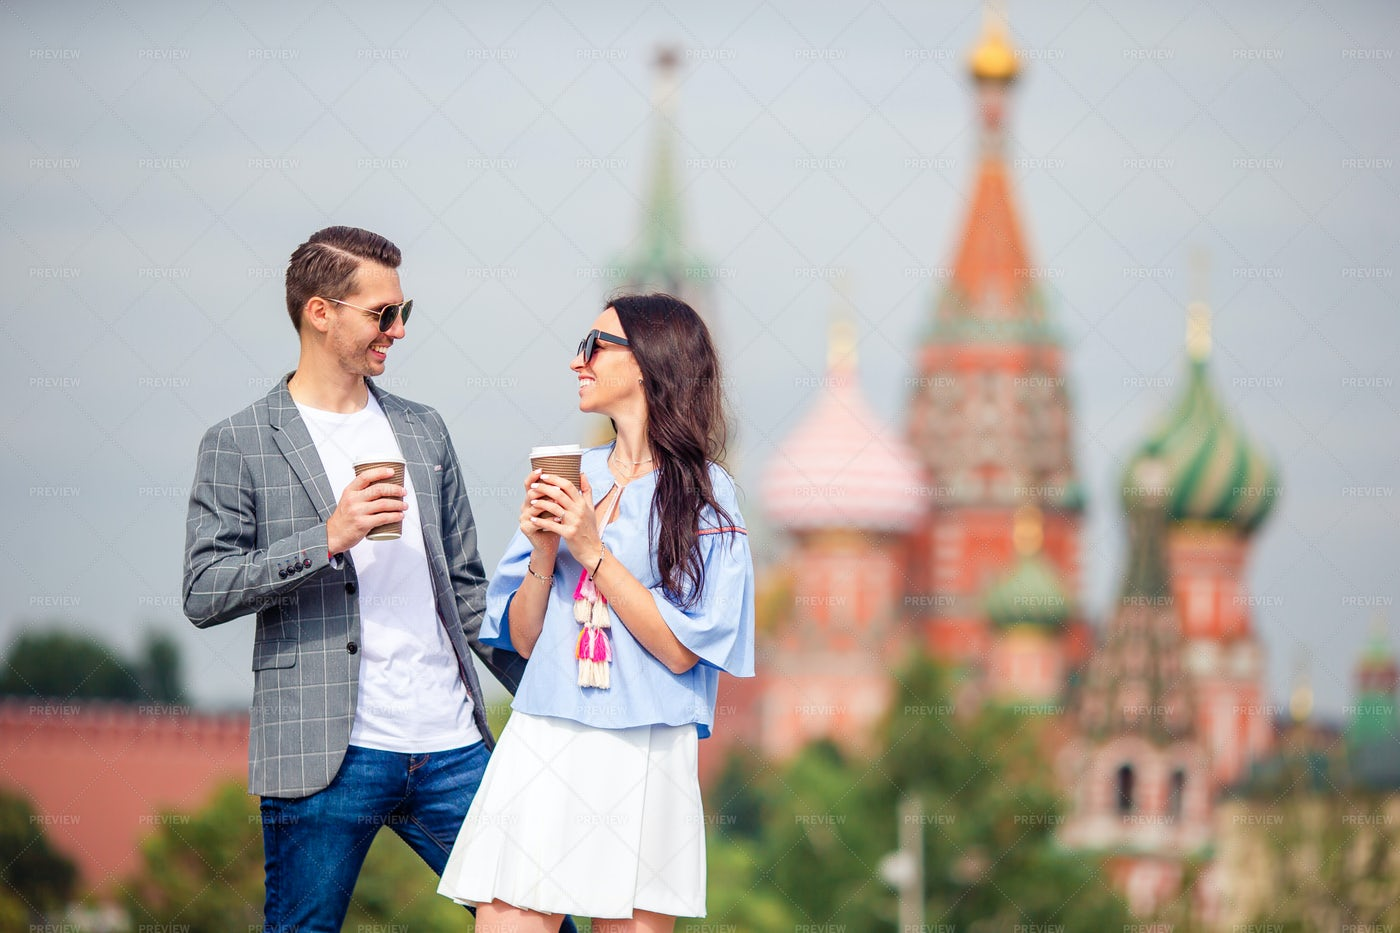 Dating Couple In Big City: Stock Photos